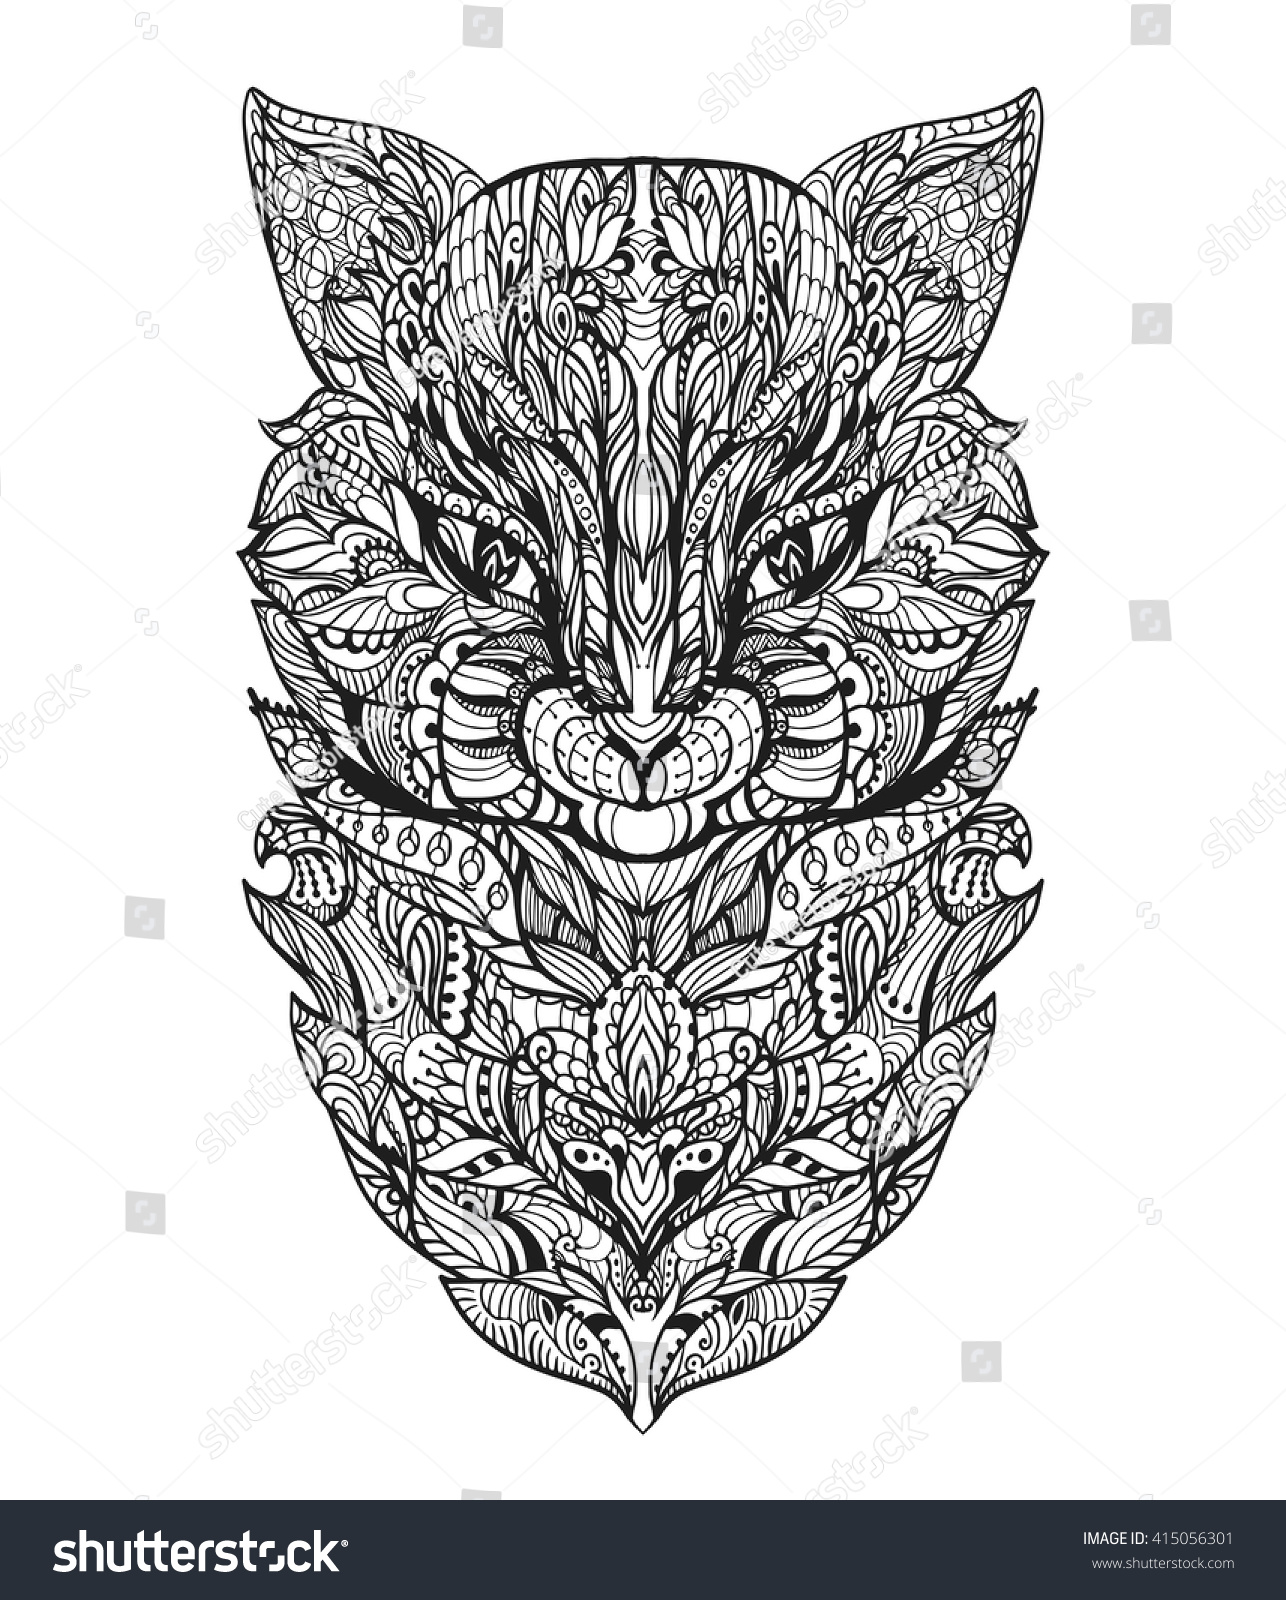 Cat Black White Zen Art Animal Head In Zentangle Style For The Adult Antistress